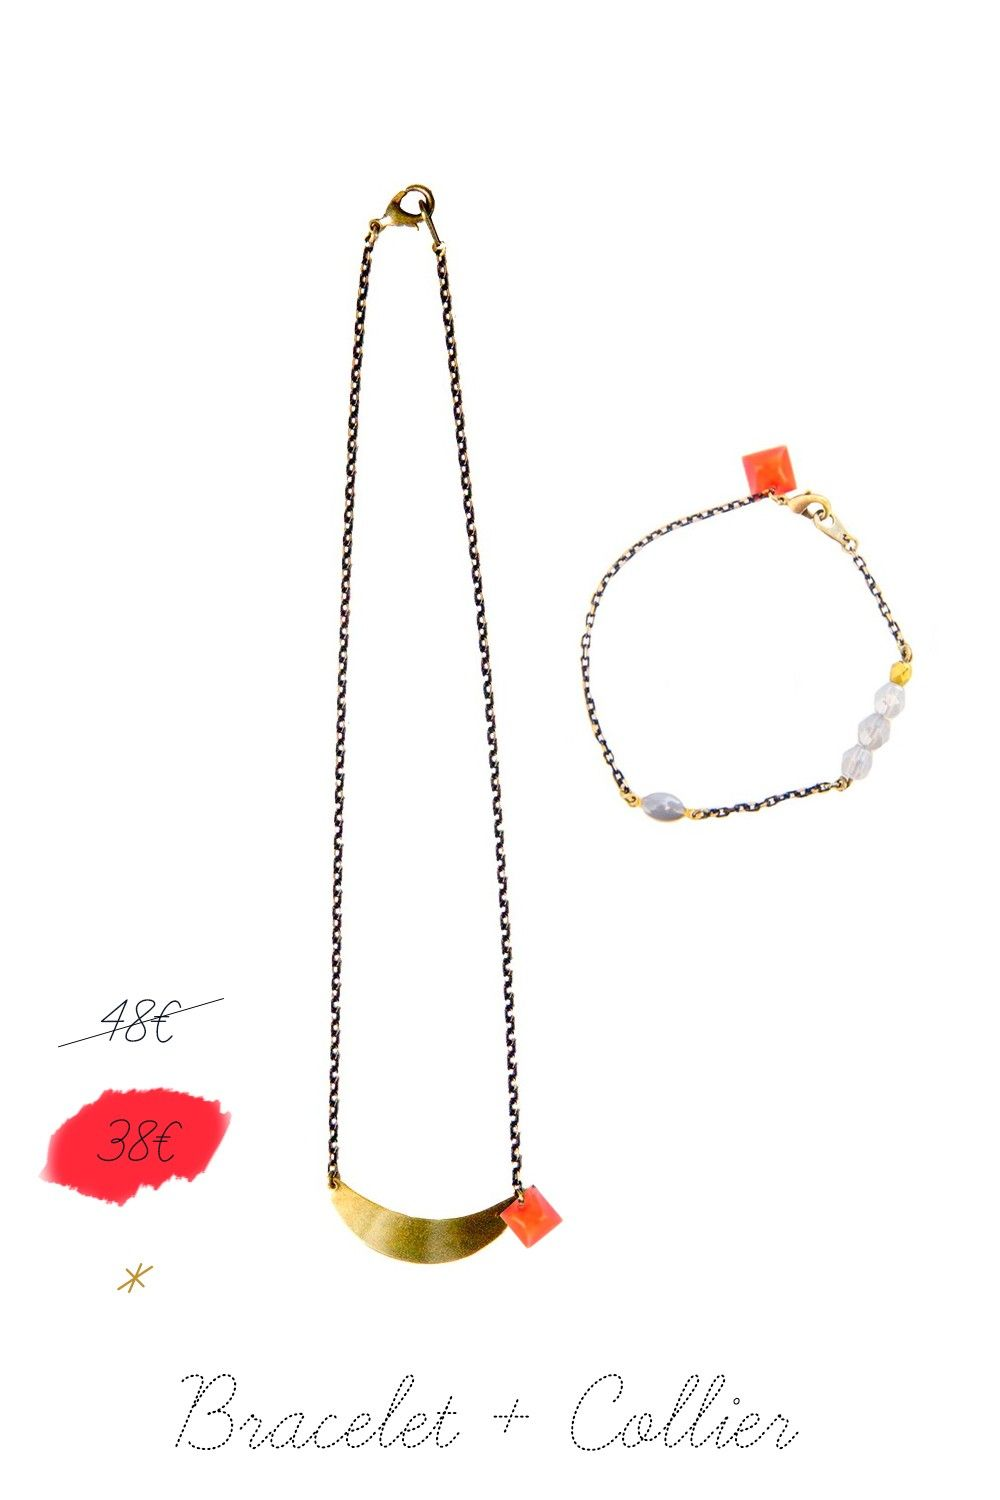 Bracelet   Collier via audreyl-creation. Click on the image to see more!